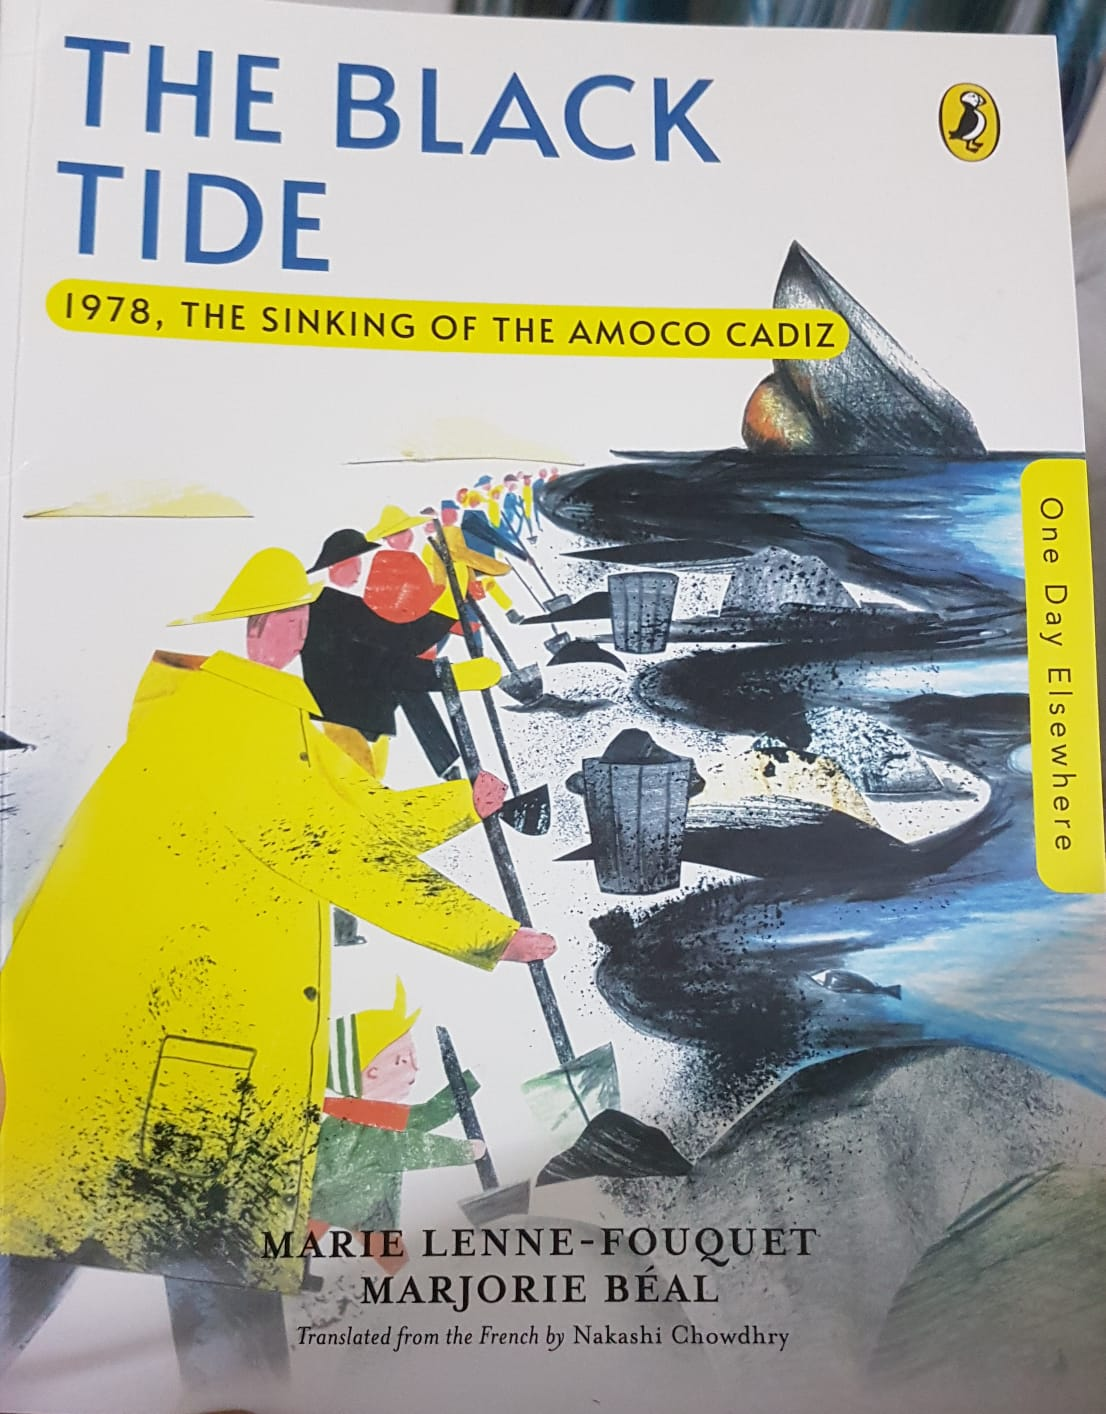 Review: The Black Tide: 1978, The Sinking Of The Amoco Cadiz